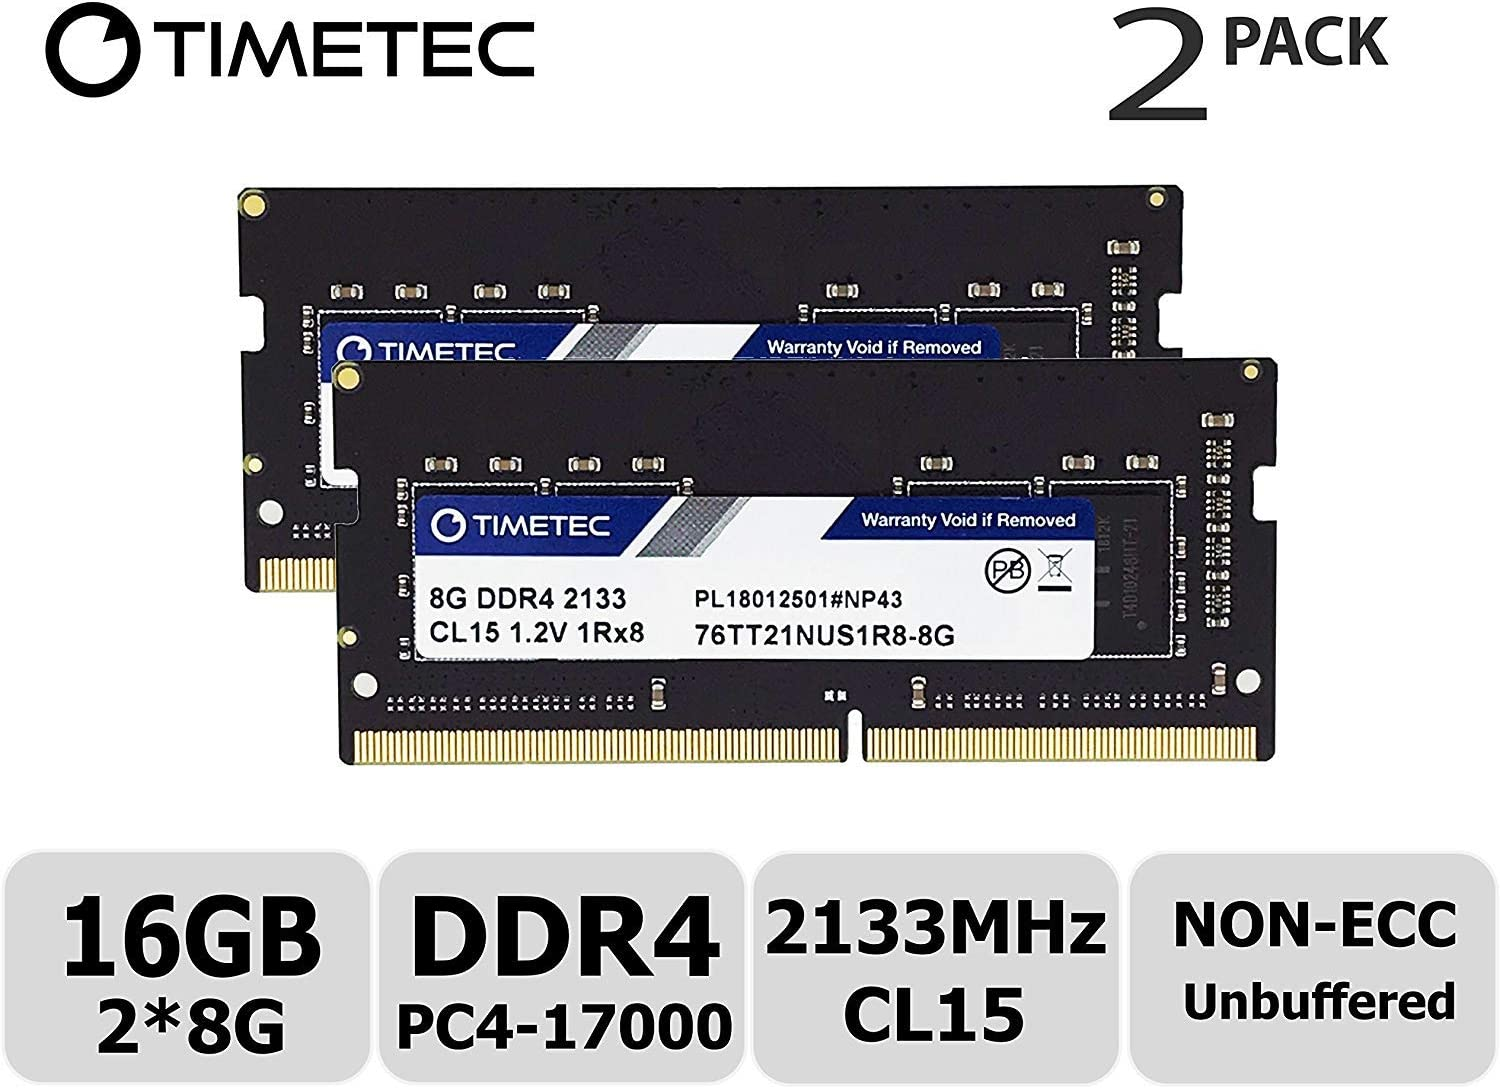 Timetec Hynix IC 16GB KIT(2x8GB) DDR4 2133MHz PC4-17000 Unbuffered Non-ECC 1.2V CL15 1Rx8 Single Rank 260 Pin SODIMM Laptop Notebook Computer Memory RAM Module Upgrade (16GB KIT(2x8GB))